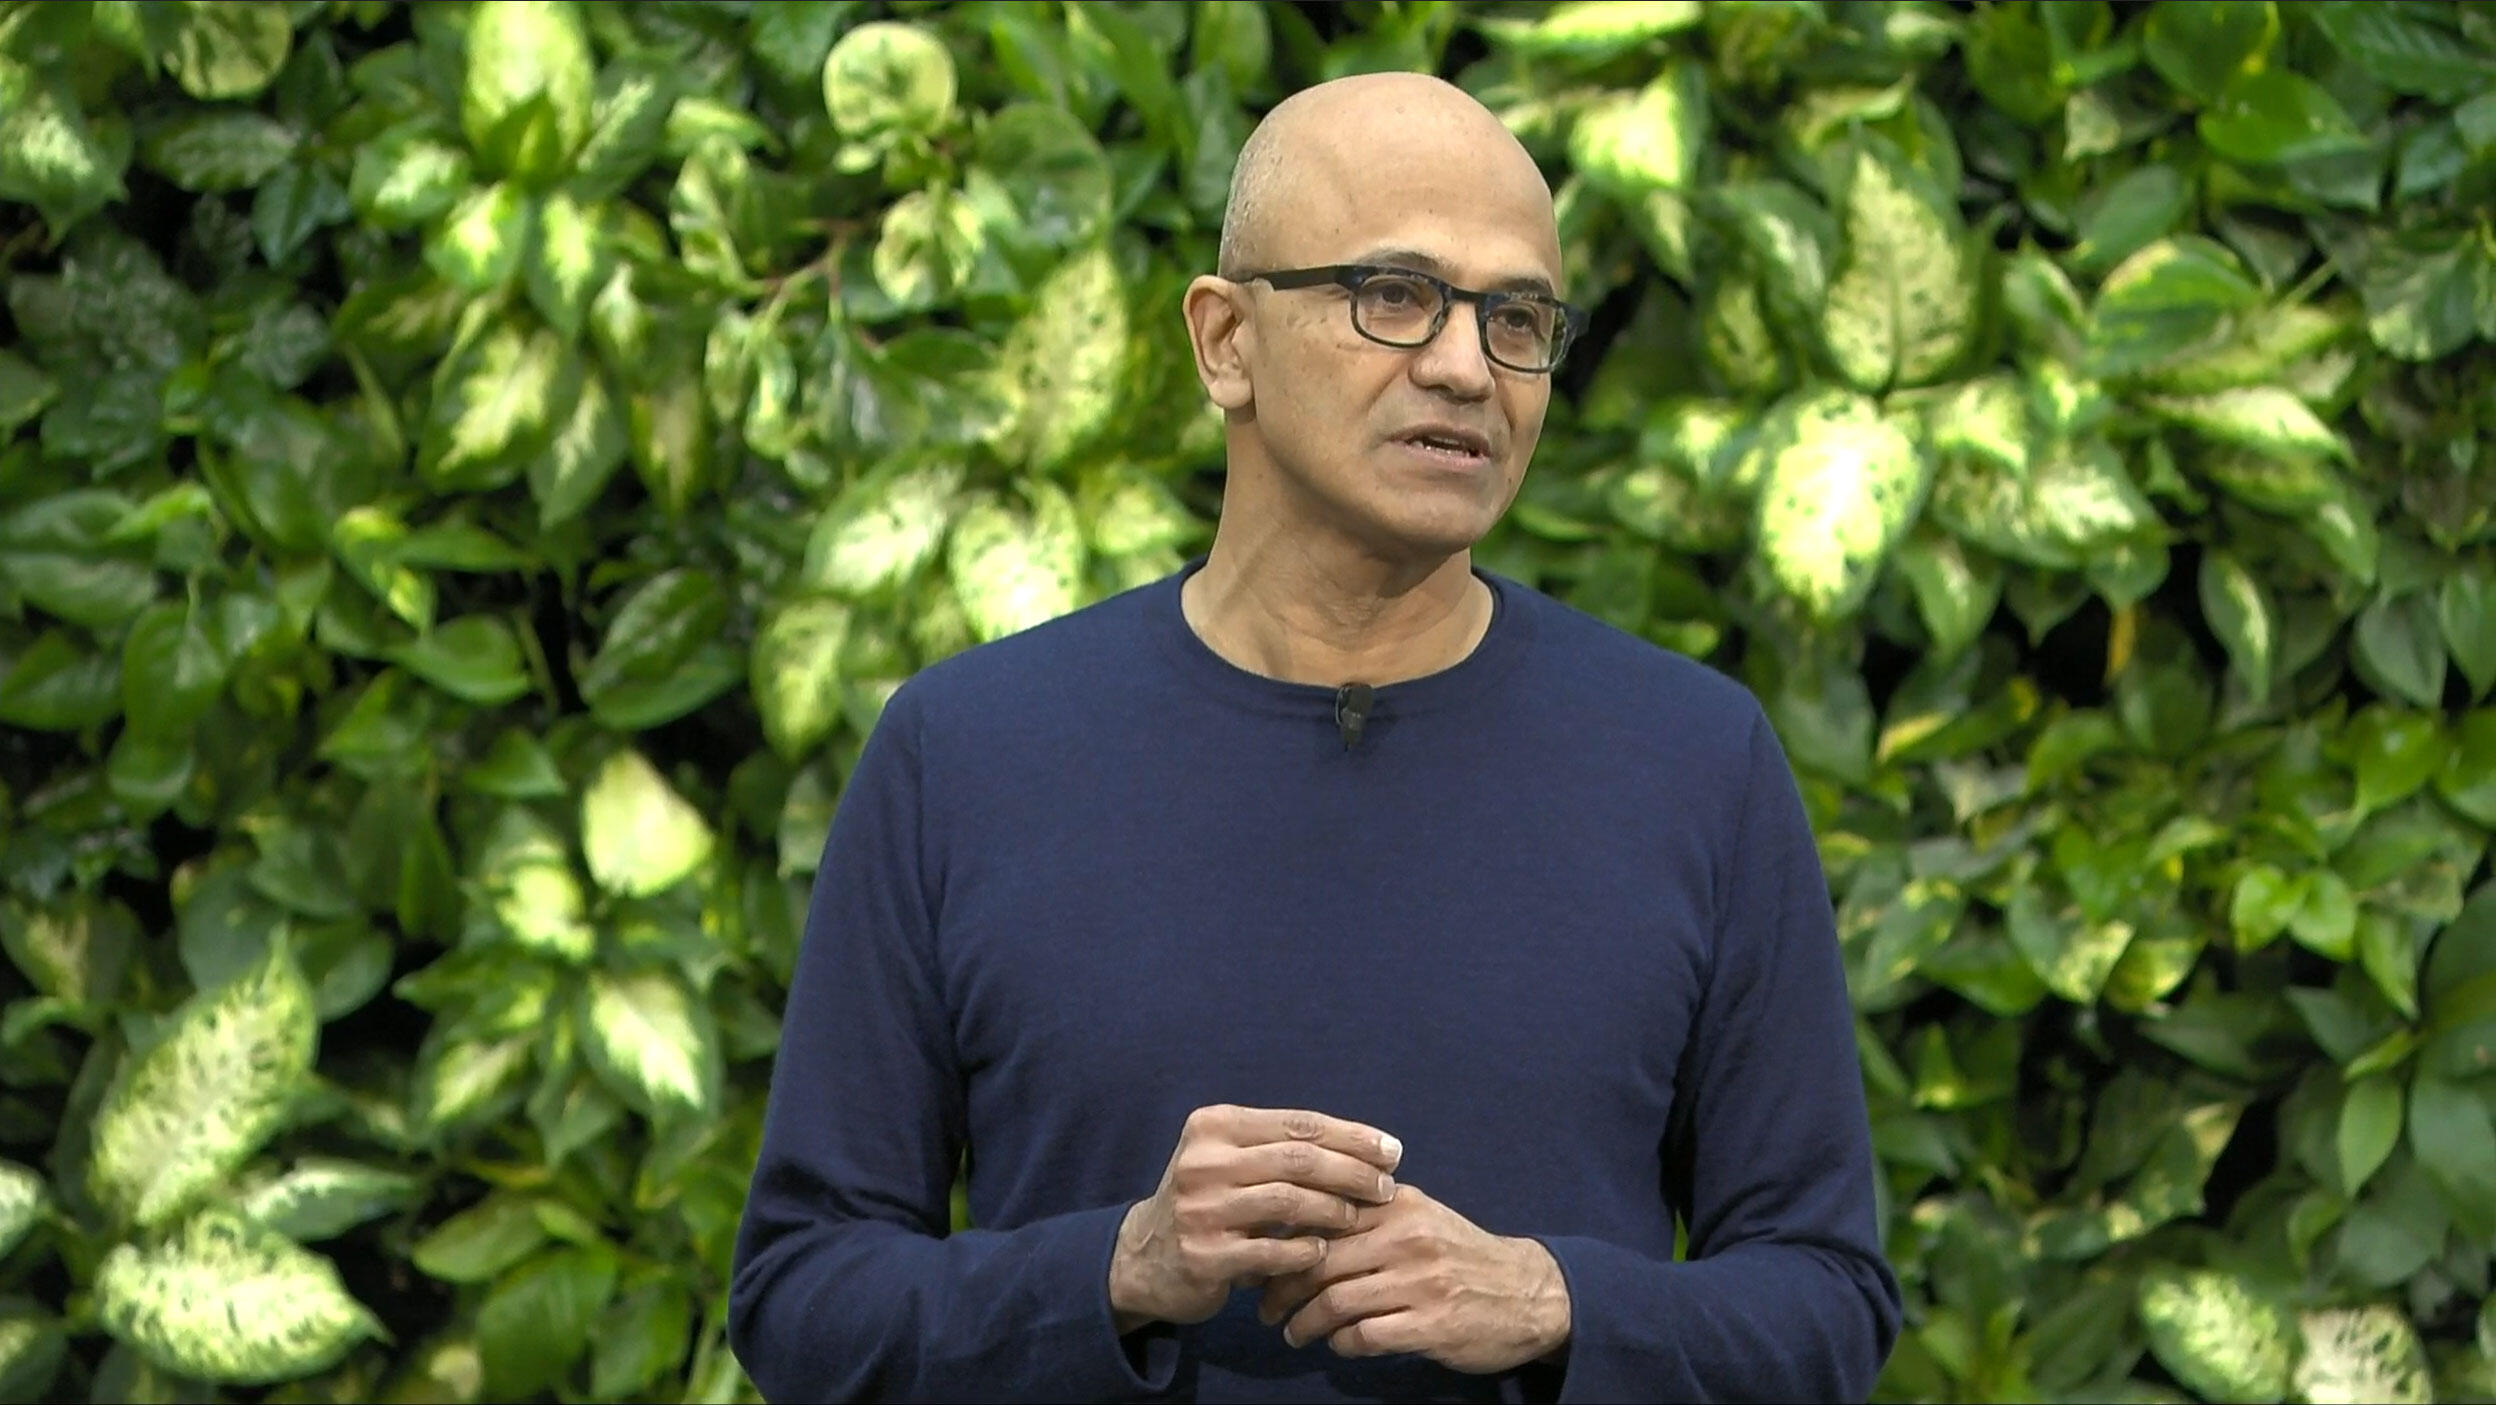 Microsoft CEO Satya Nadella pledged to fight racism personally and at his company.